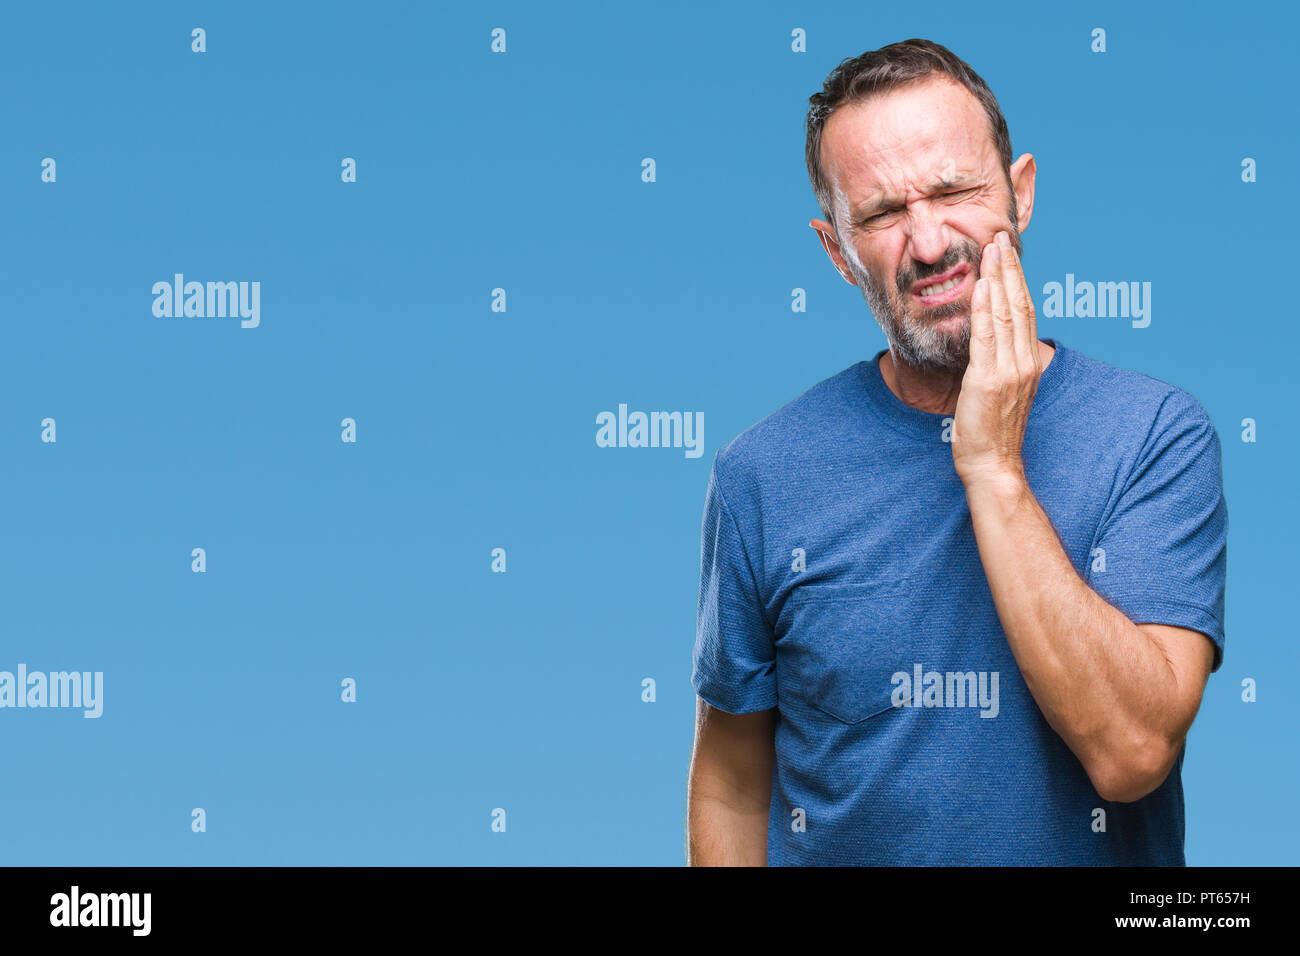 Middle age hoary senior man over isolated background touching mouth with hand with painful expression because of toothache or dental illness on teeth. Stock Photo